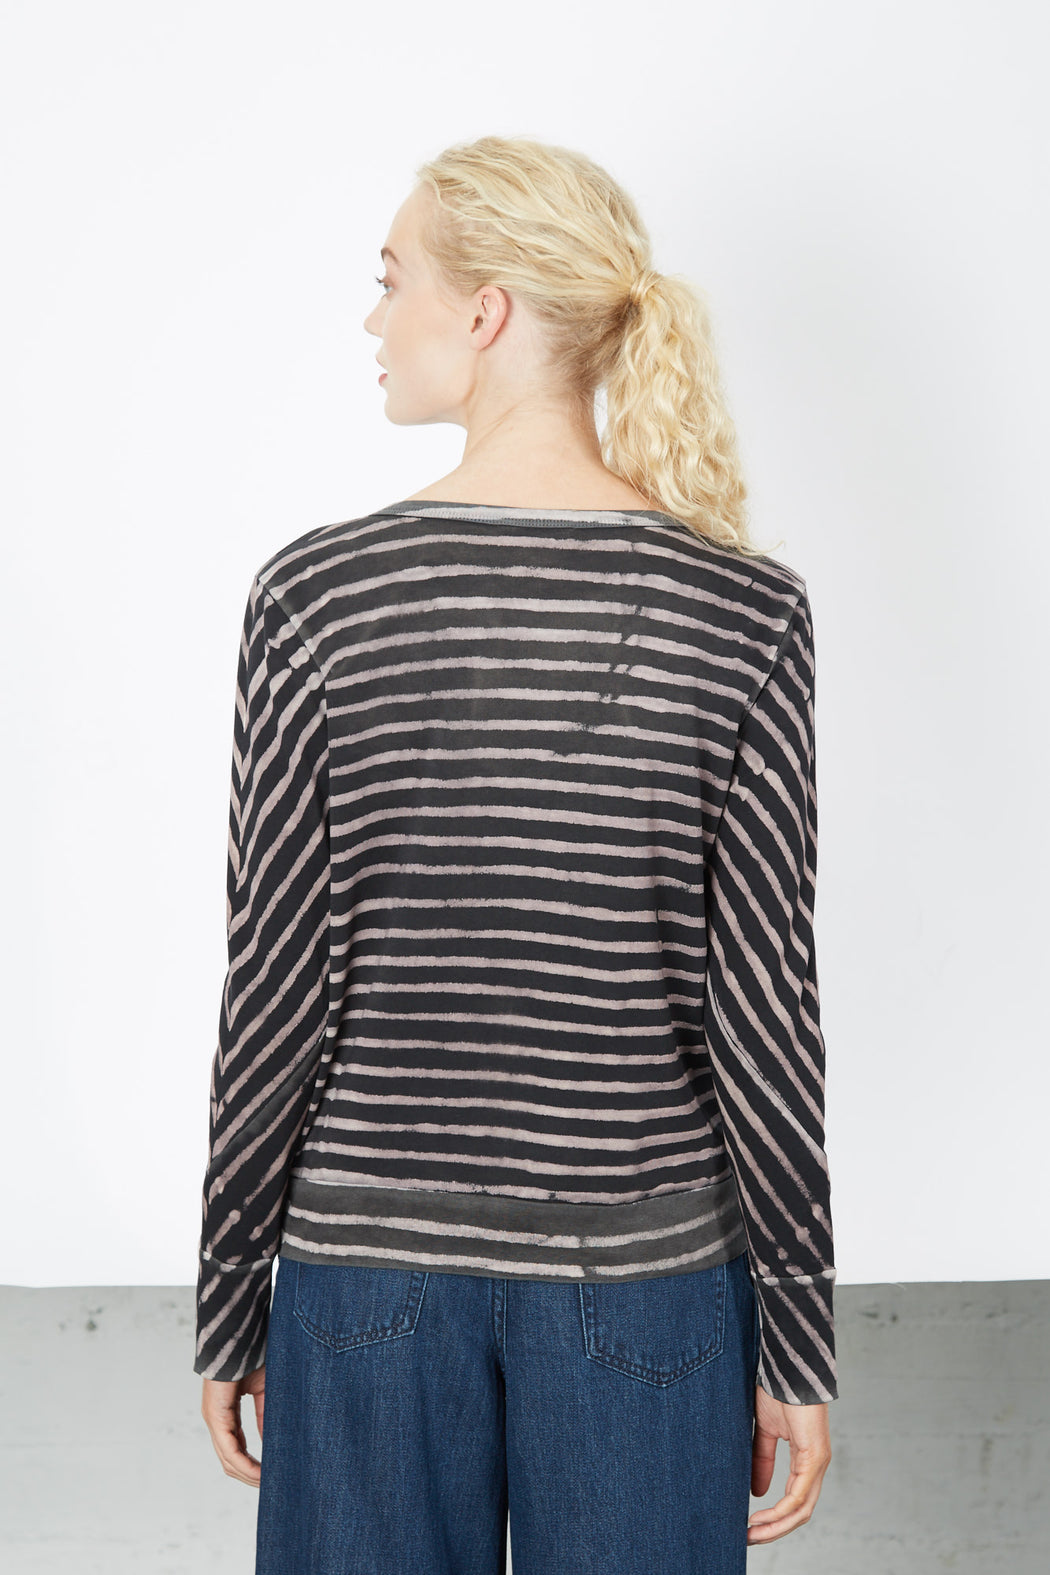 CREWNECK SWEATSHIRT Black Soft Stripes